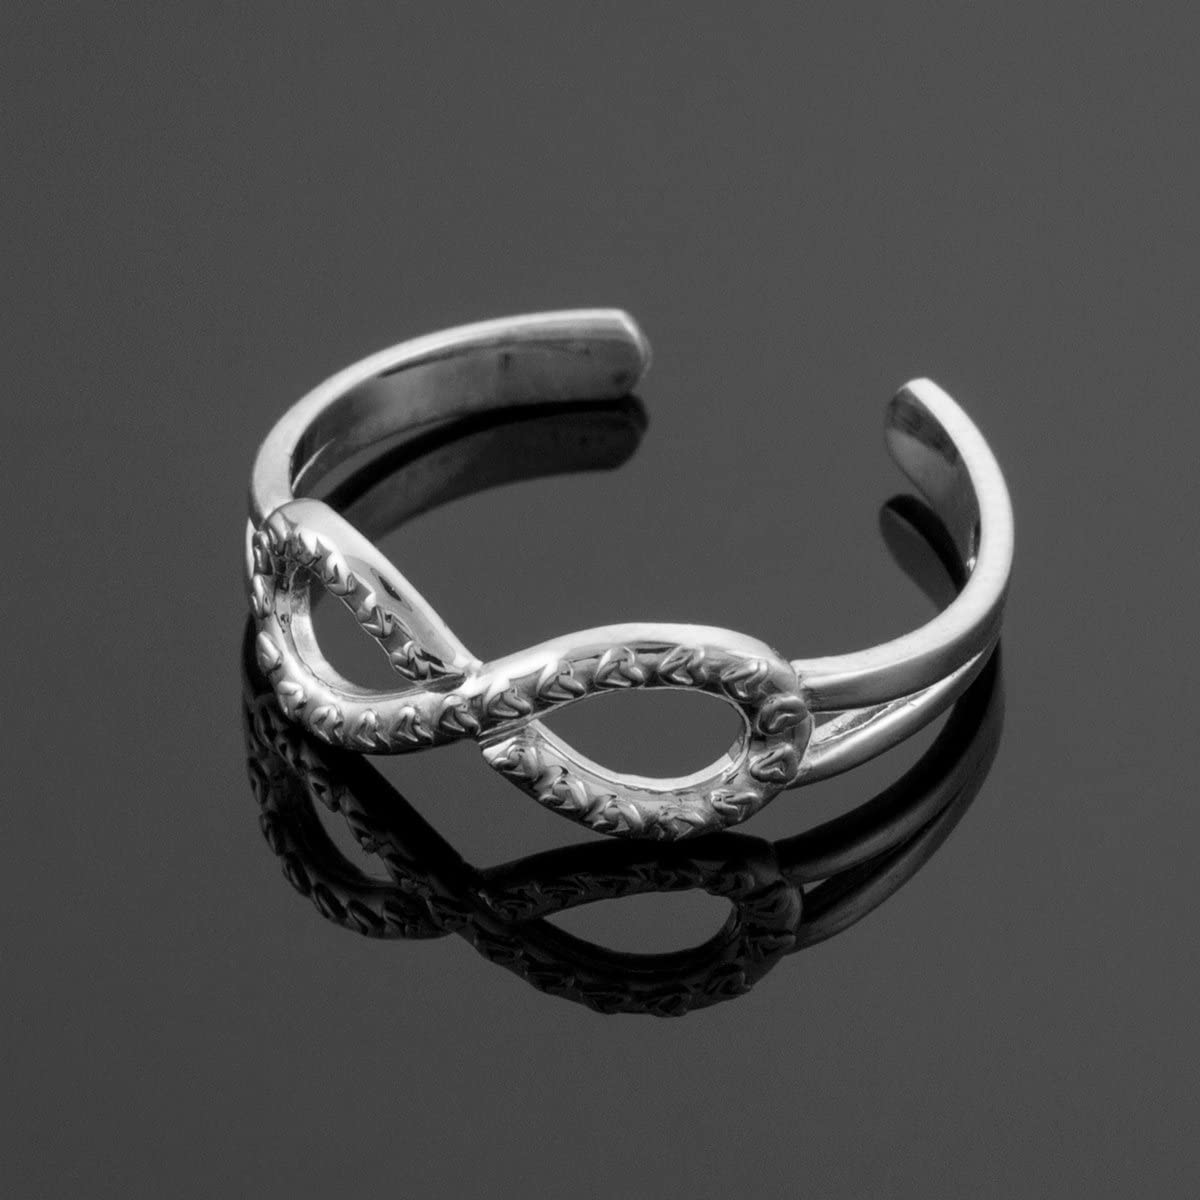 14k White Gold Infinity Toe Ring with Hearts Texture